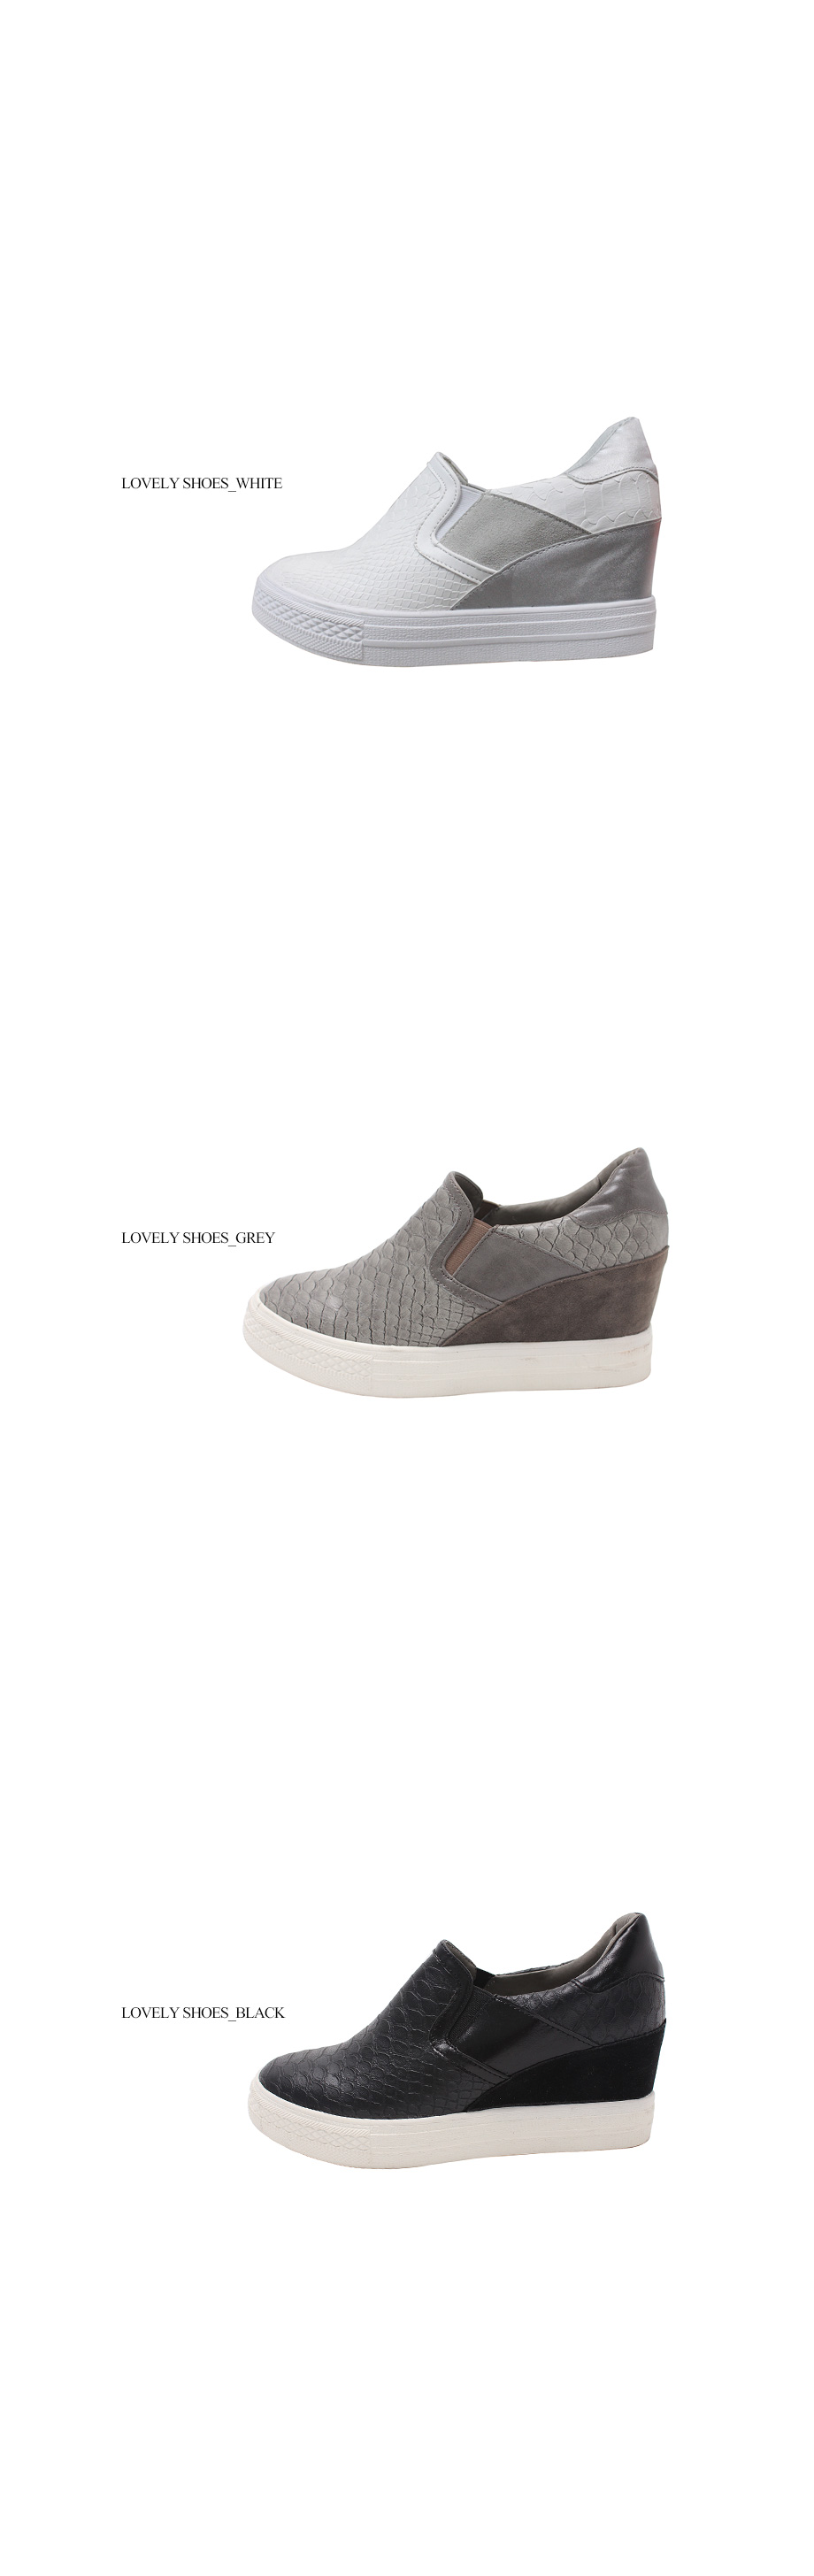 Horniness height 7cm slip-on